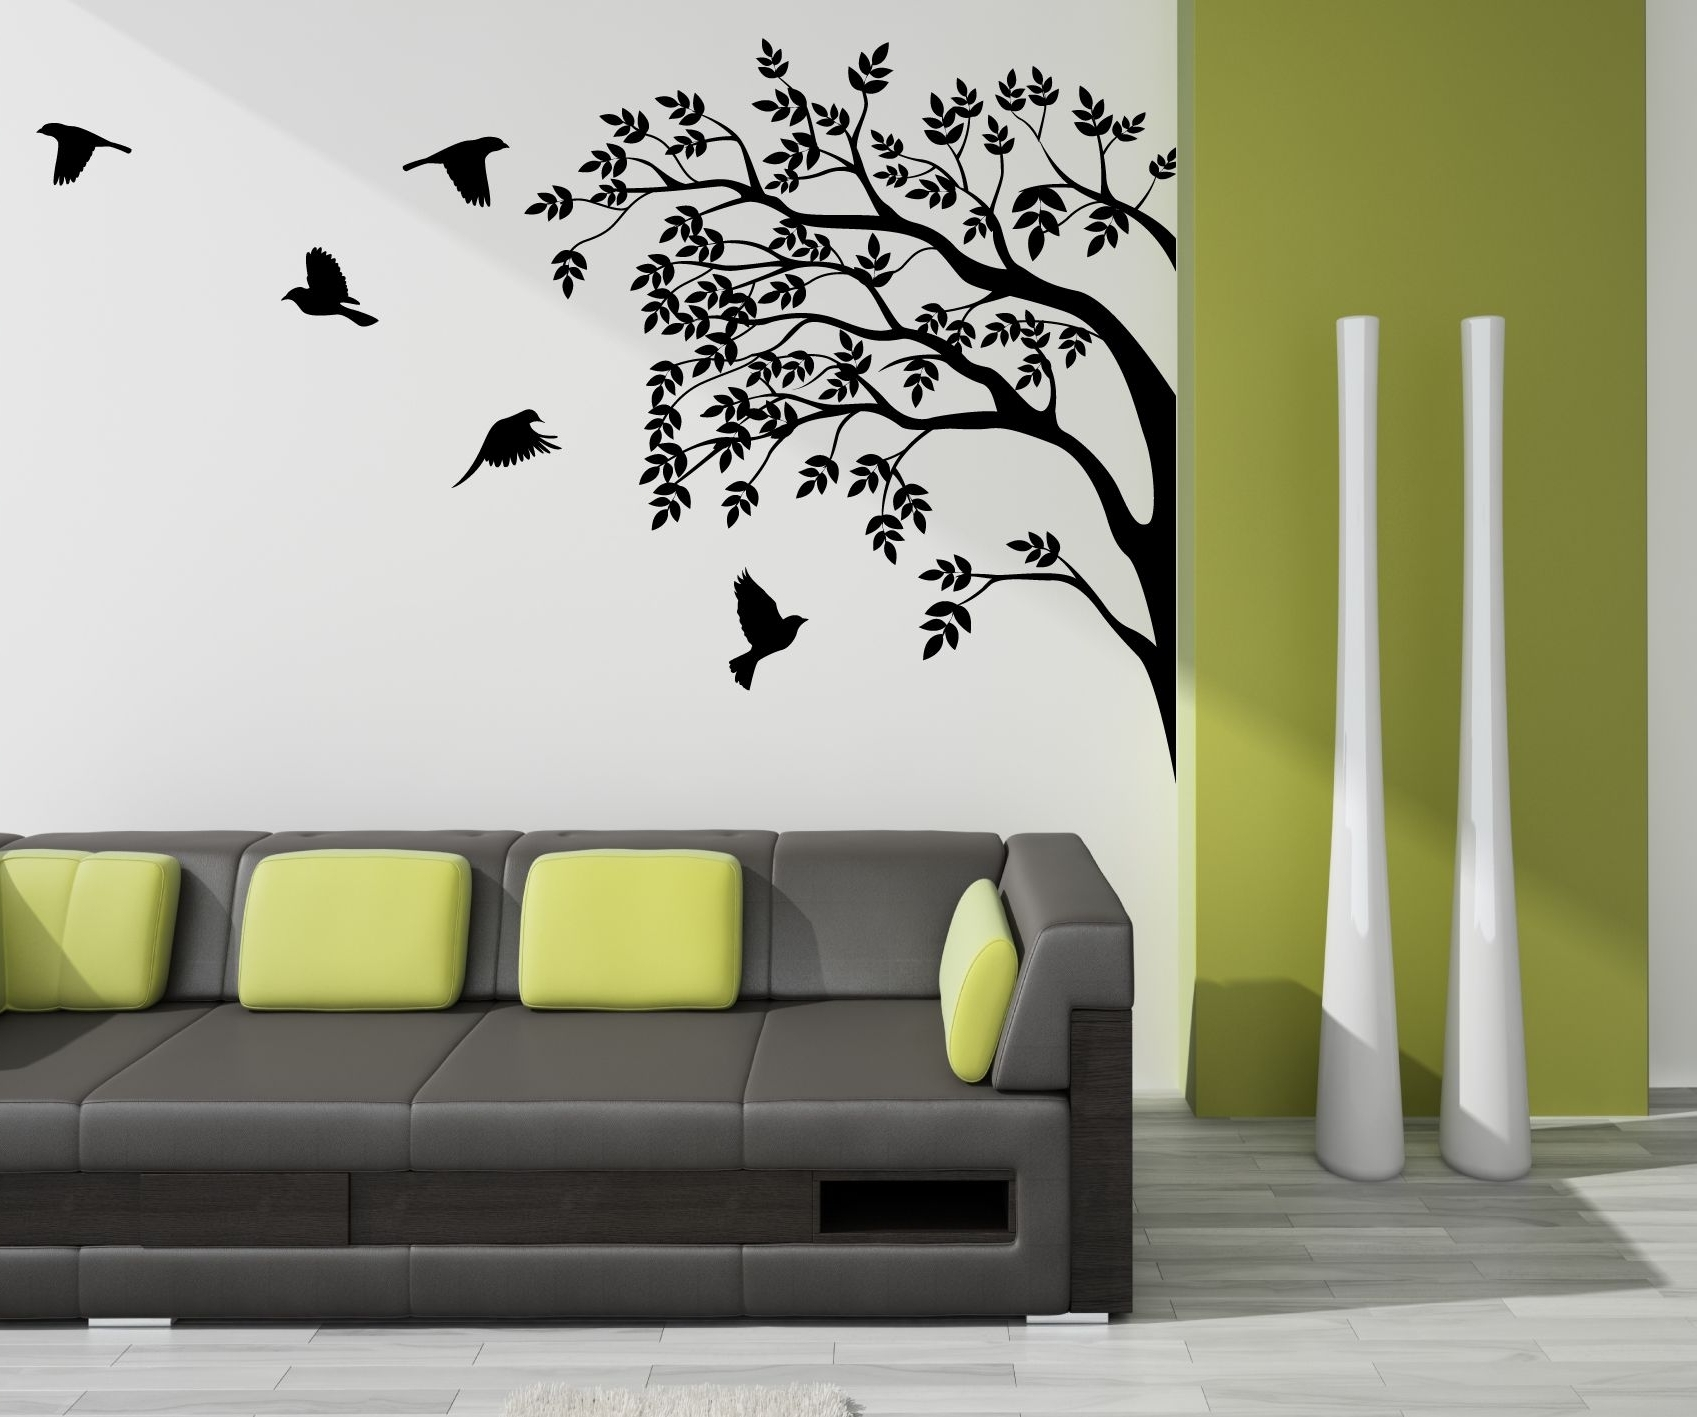 Well Known Wall Art Designs Regarding Wall Art Designs Follow Your Imagination And Ideas – Furniture And (View 15 of 15)